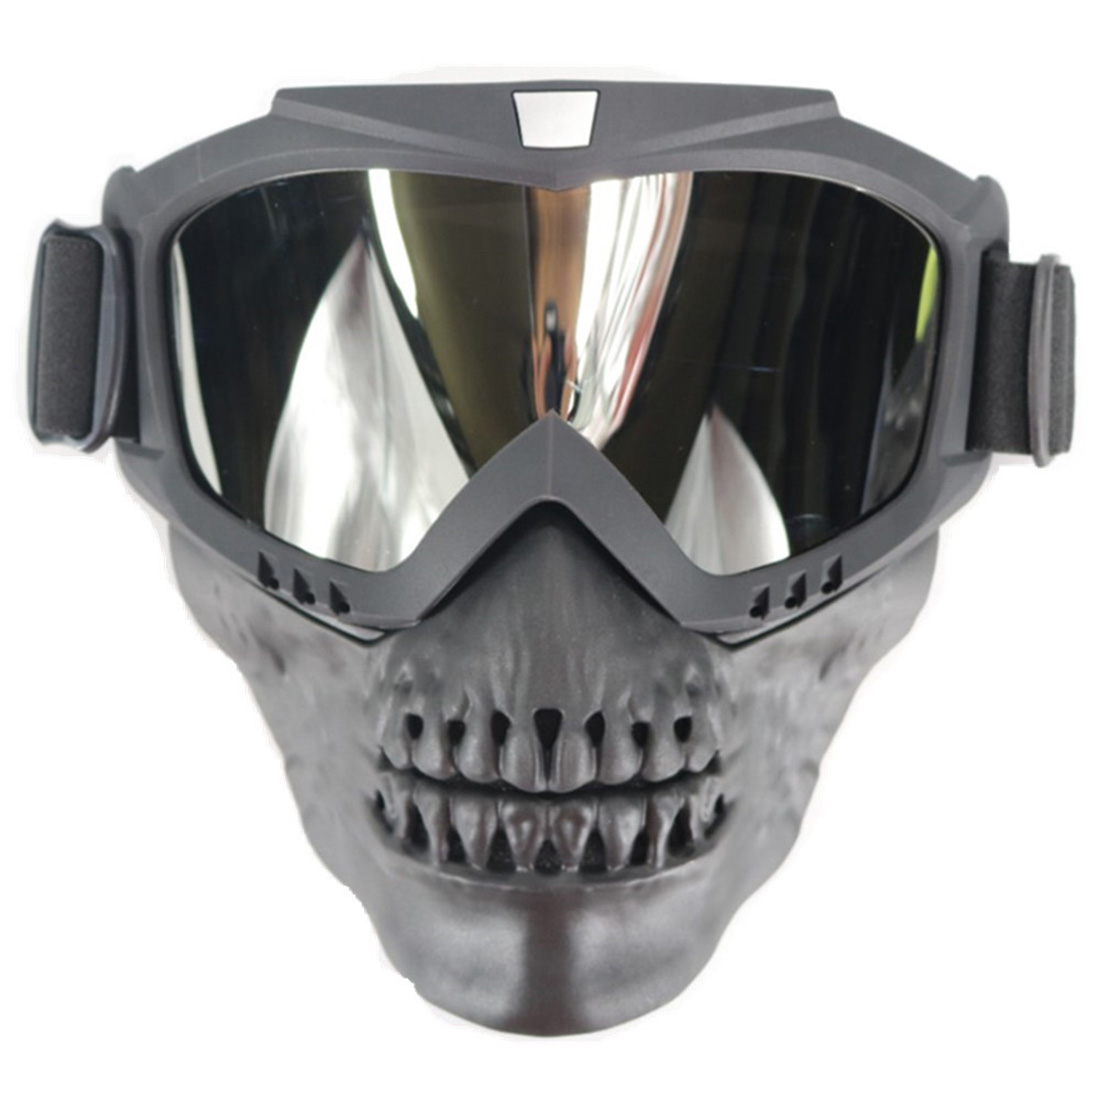 2019 New Arrival American Shock Resistance Tactical Goggles Mask Skull Protective Full Face Mask For Outdoor Airsoft CS Event